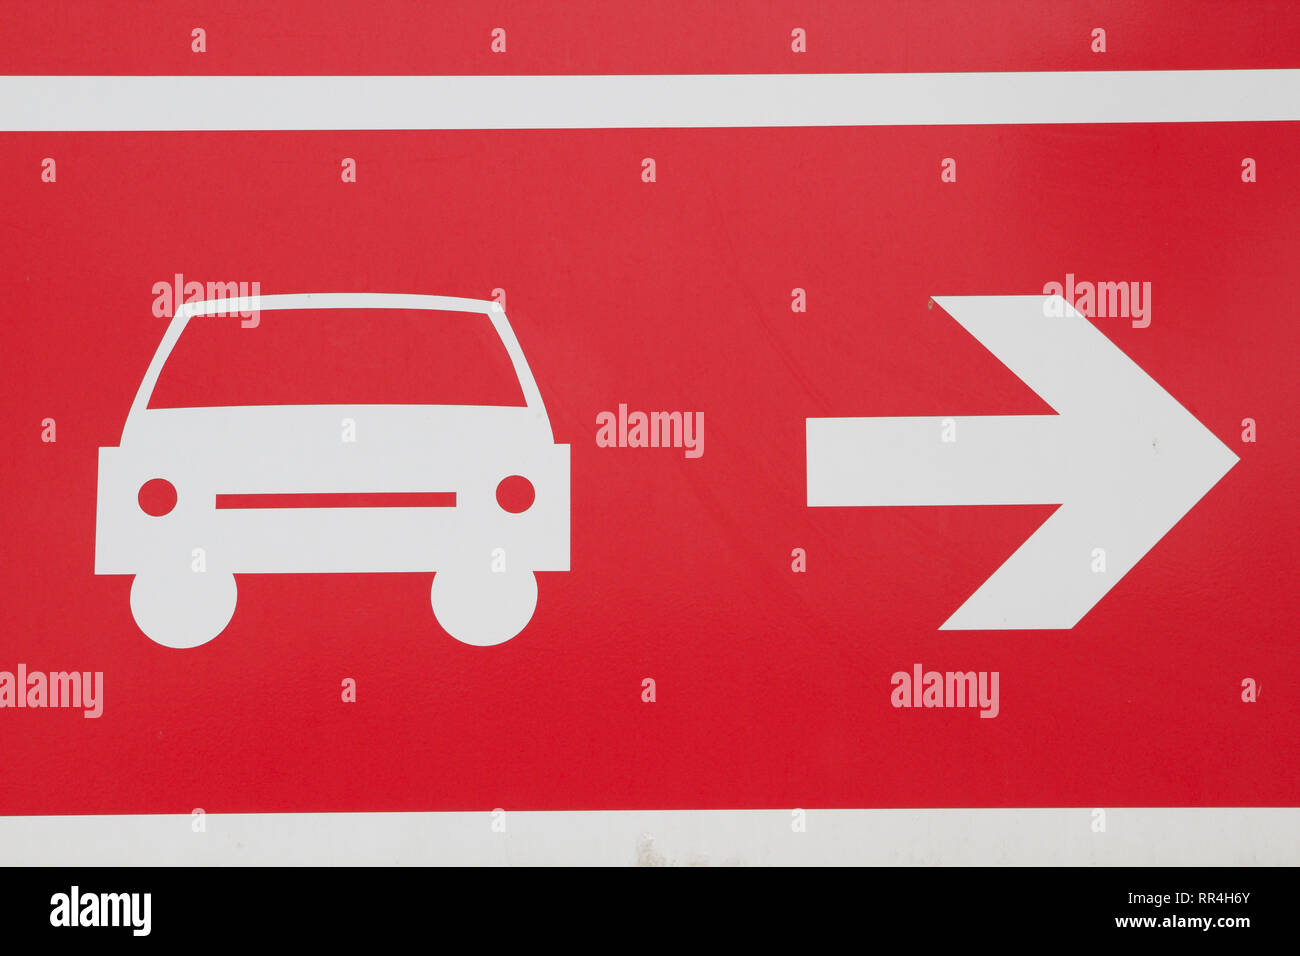 Barcelona-Metallic red label Parking to the right - Stock Image